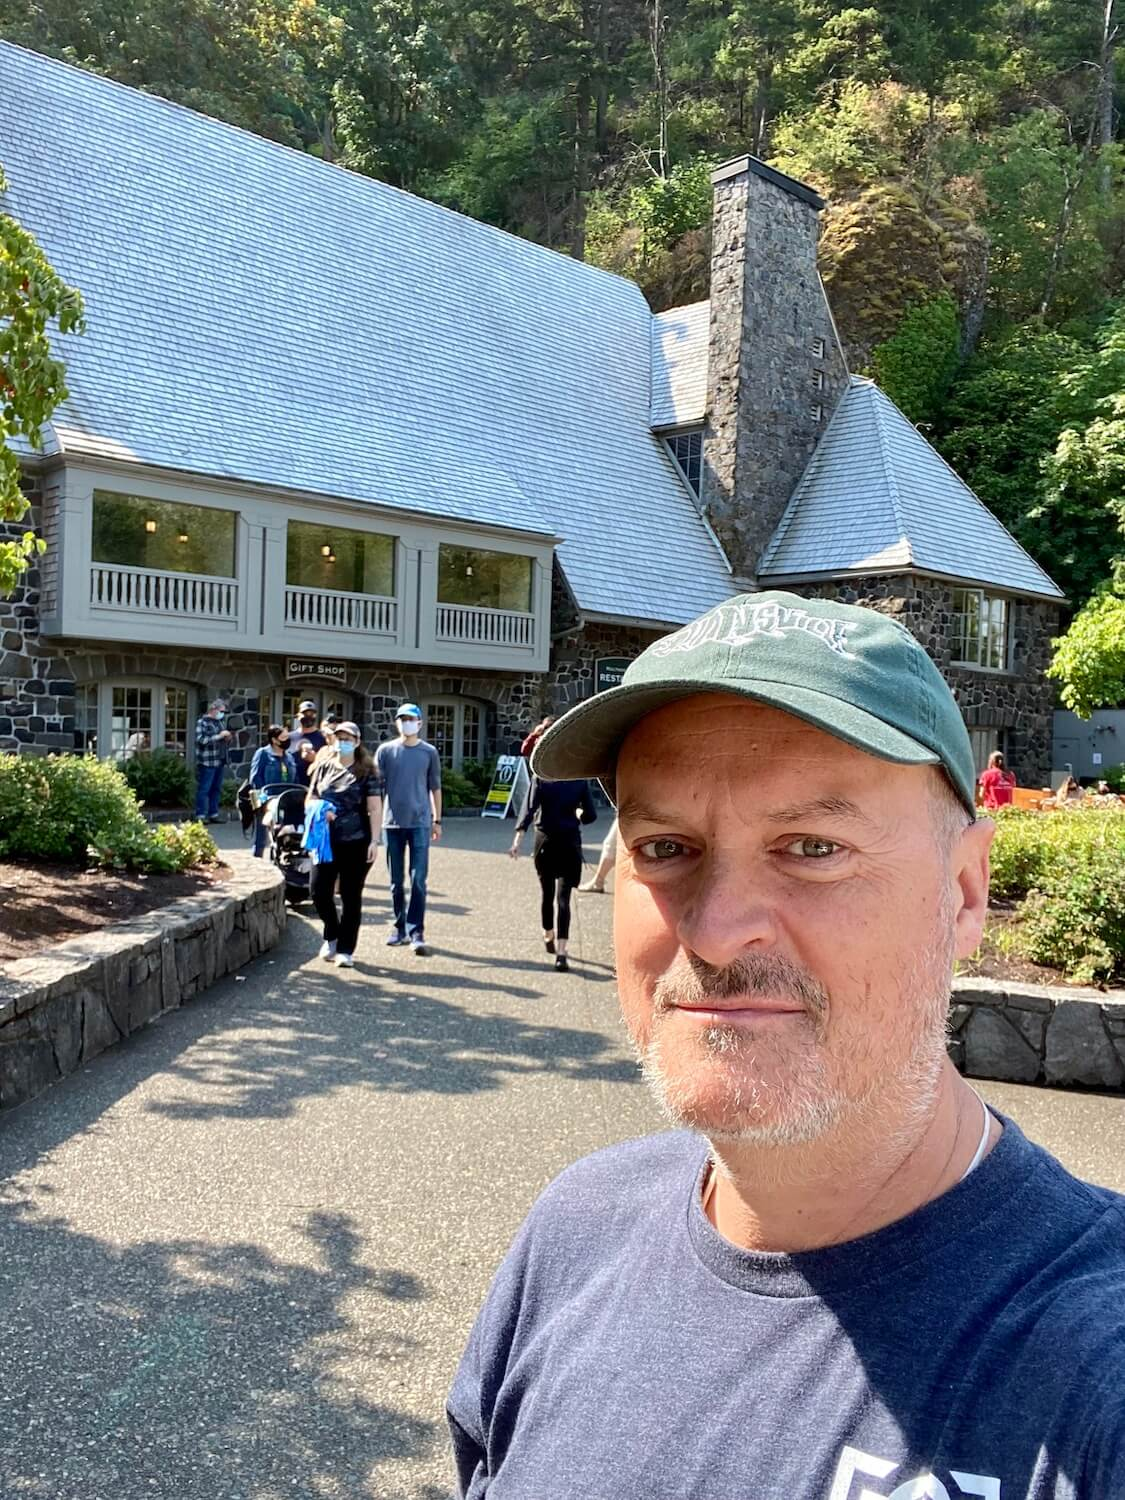 Matthew Kessi takes a selfie at Mulnomah Falls Lodge. There are people coming out of the lodge, which has a large stone fireplace and sweeping shake roofline.